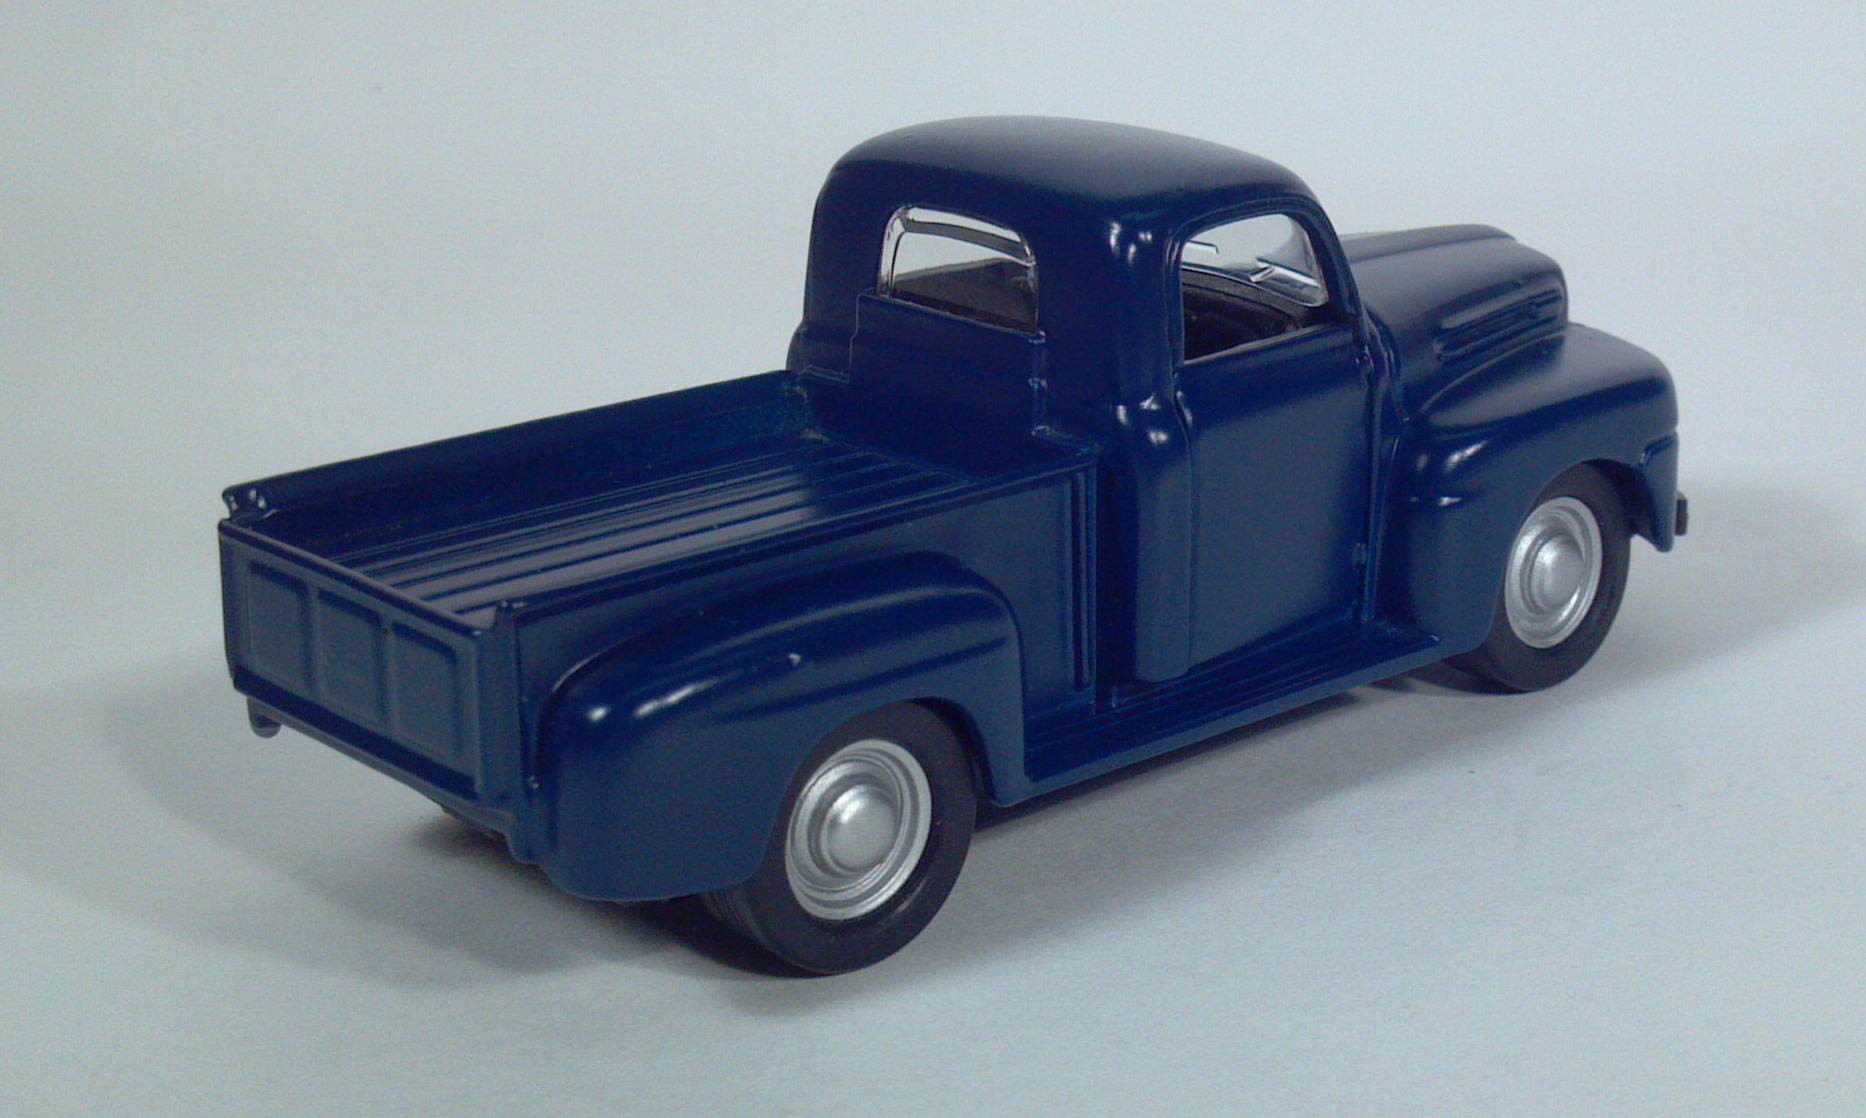 Diecast Toy Pickup Truck Scale Models 1949 Dodge Tow Maisto 1948 1950 Ford F1 F2 136 Model